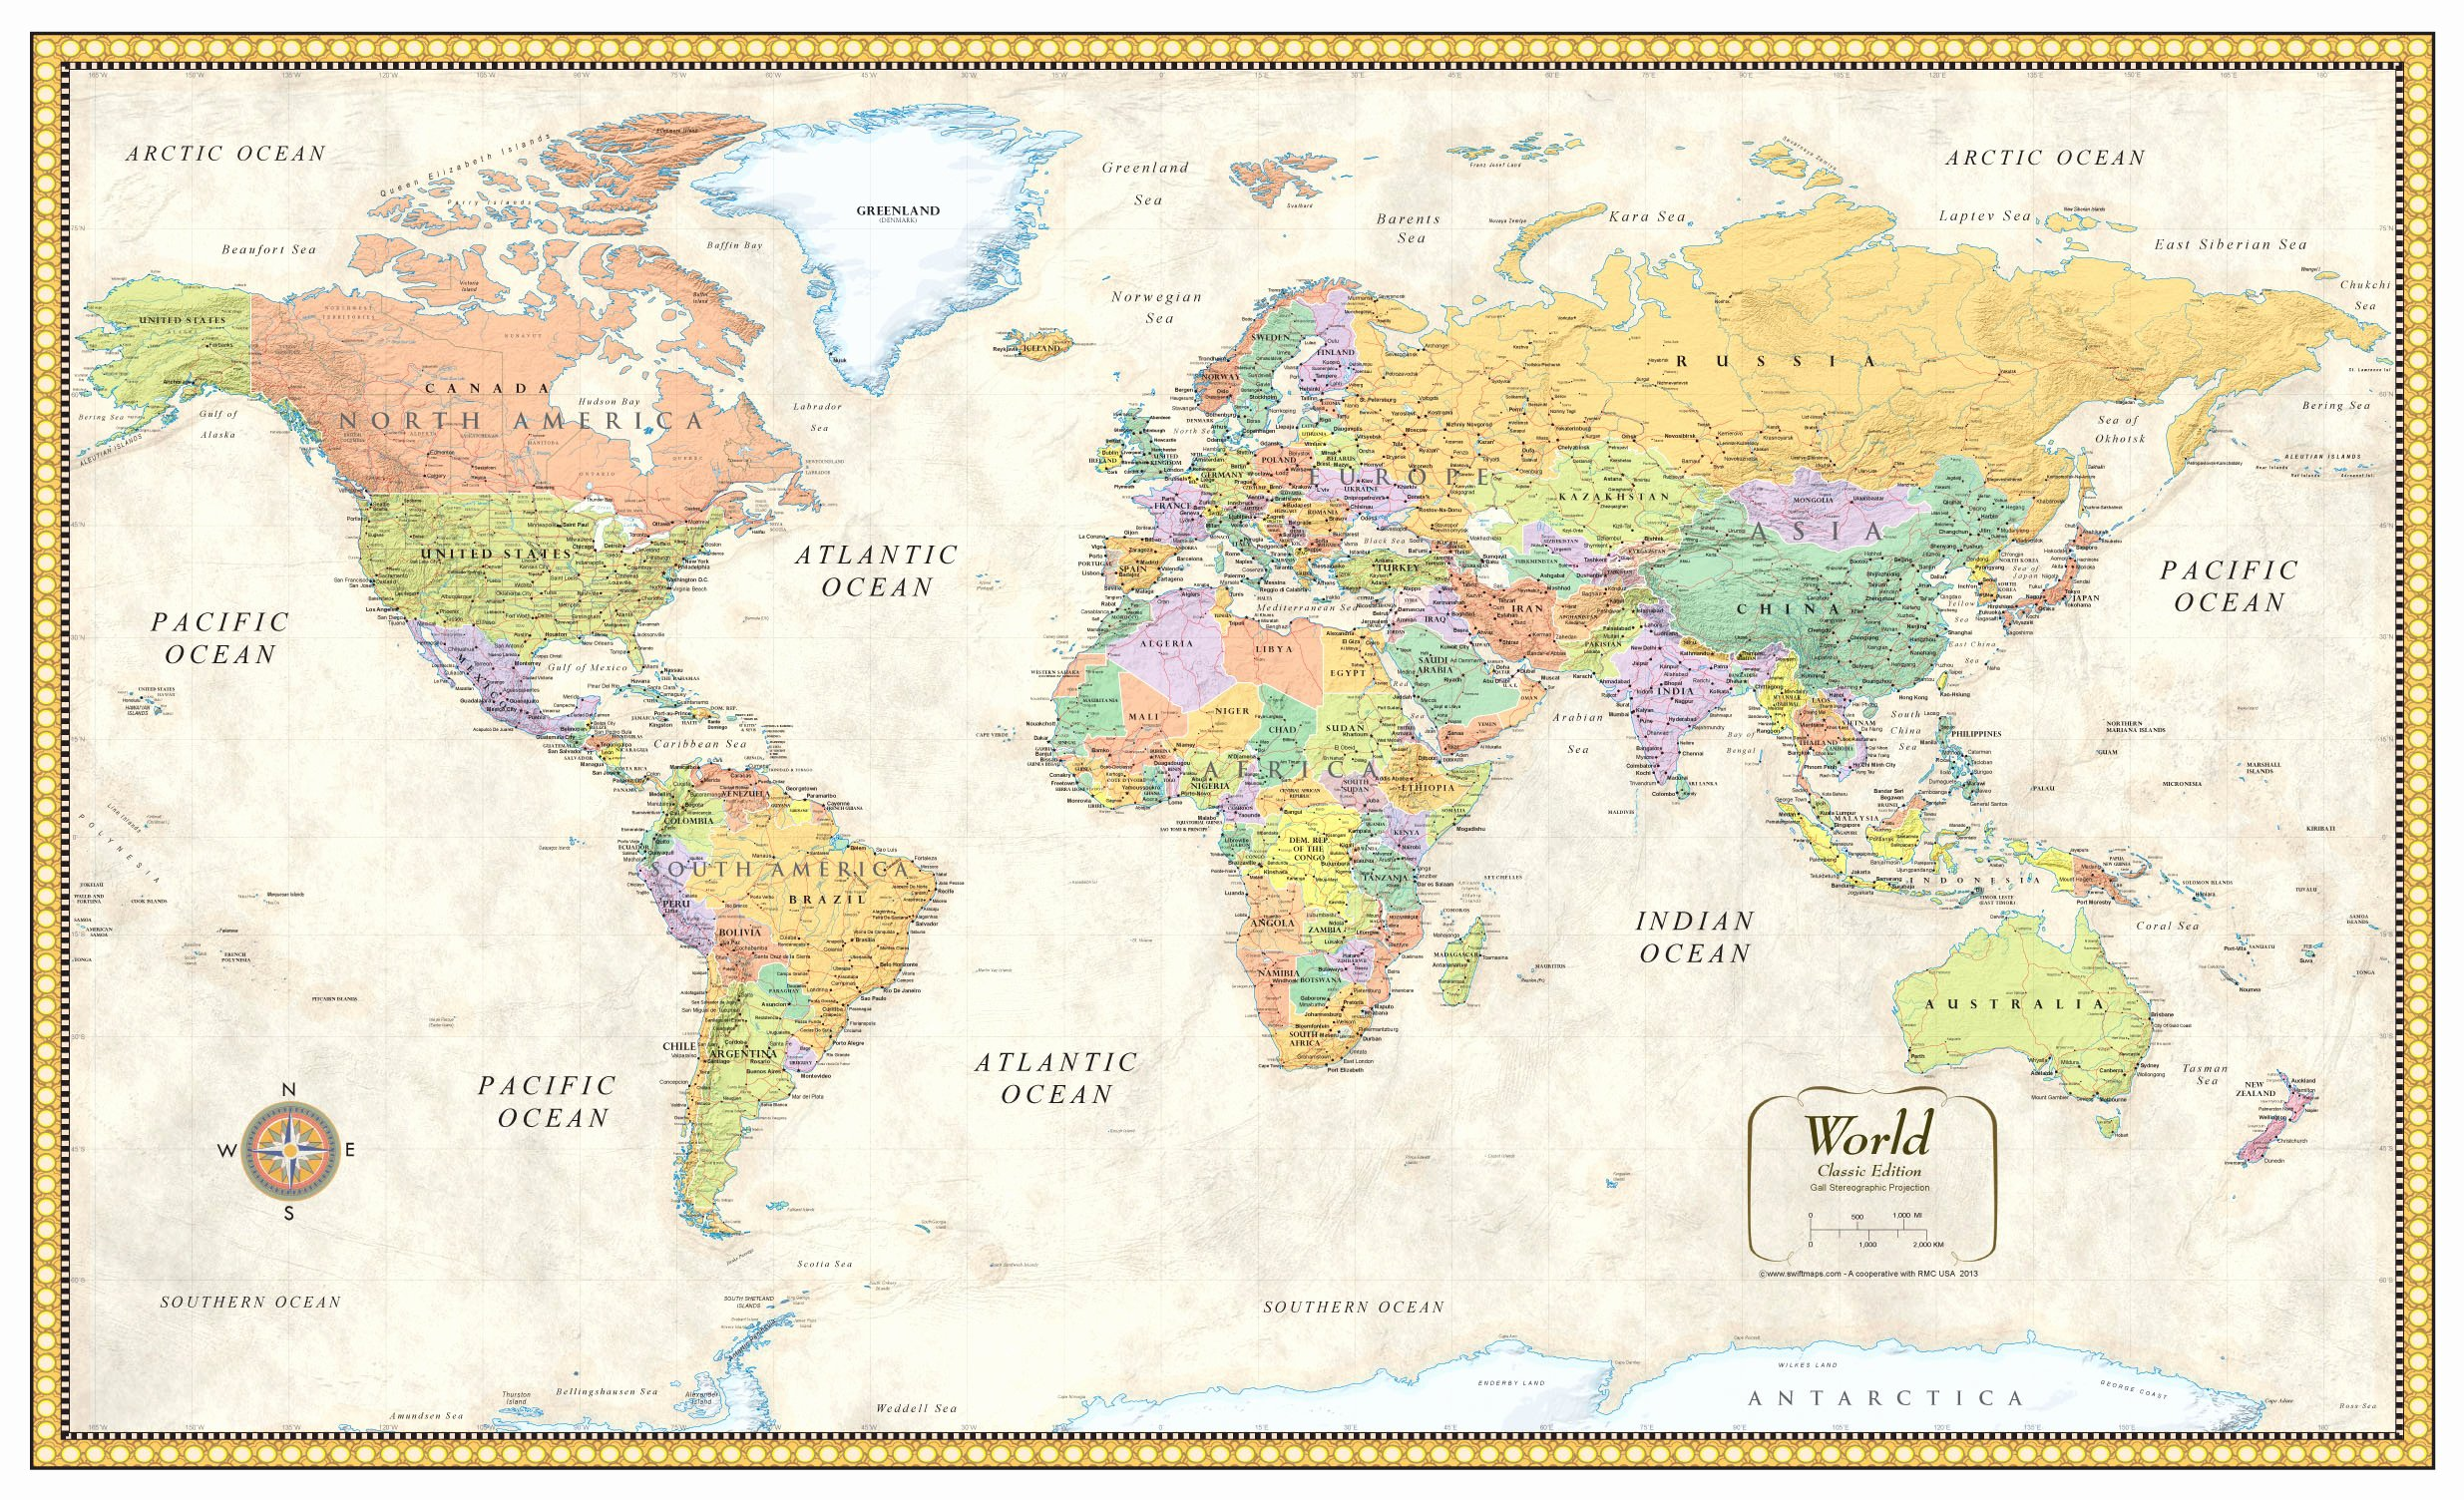 Free World Map Poster Inspirational Contemporary Premier World Wall Map Poster